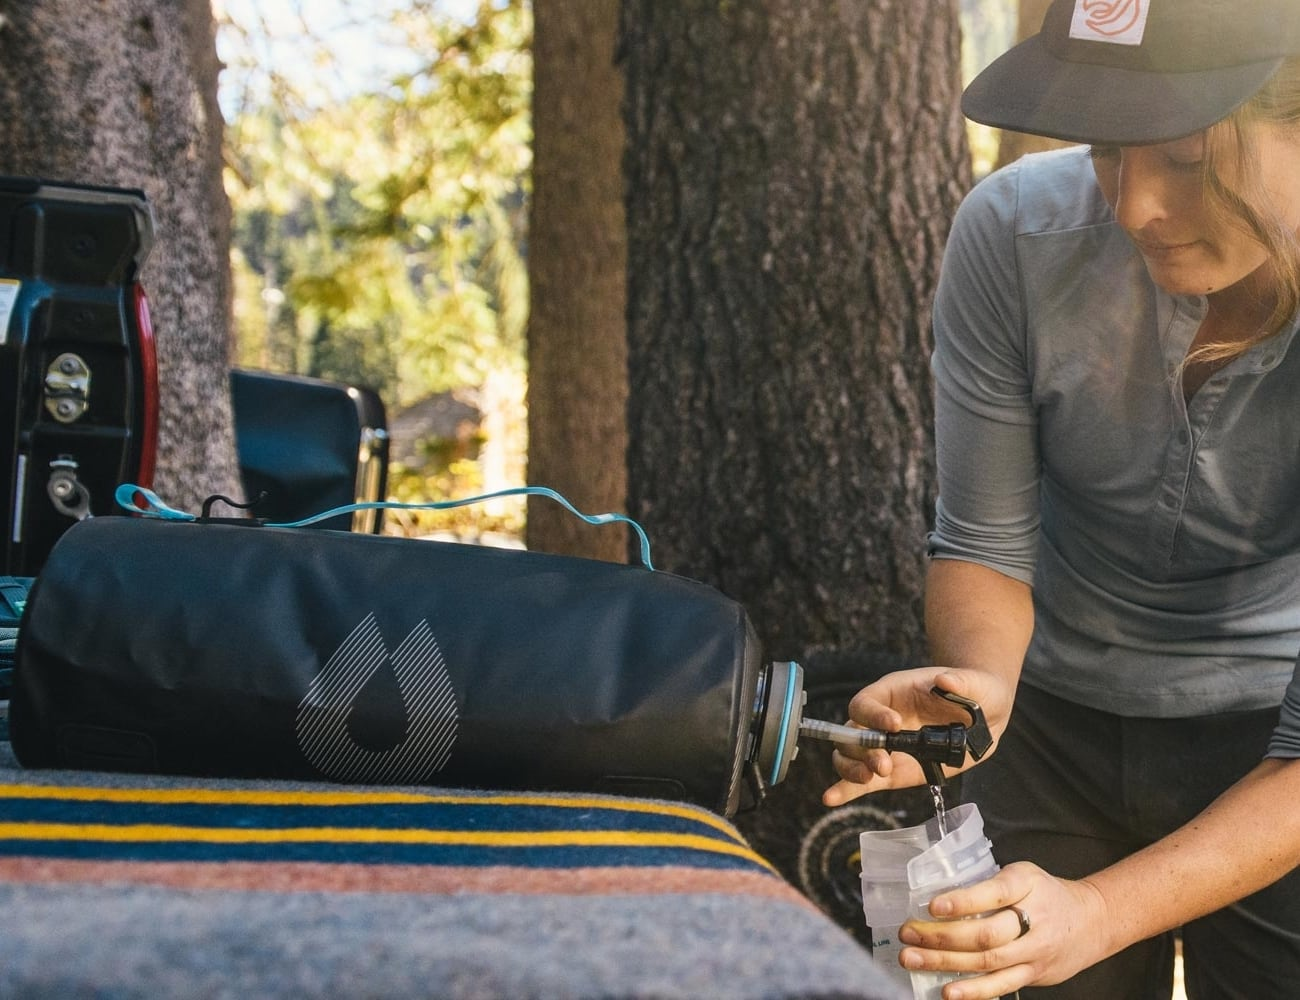 HydraPak Expedition 8-Liter Water Storage Bladder keeps all your adventures hydrated